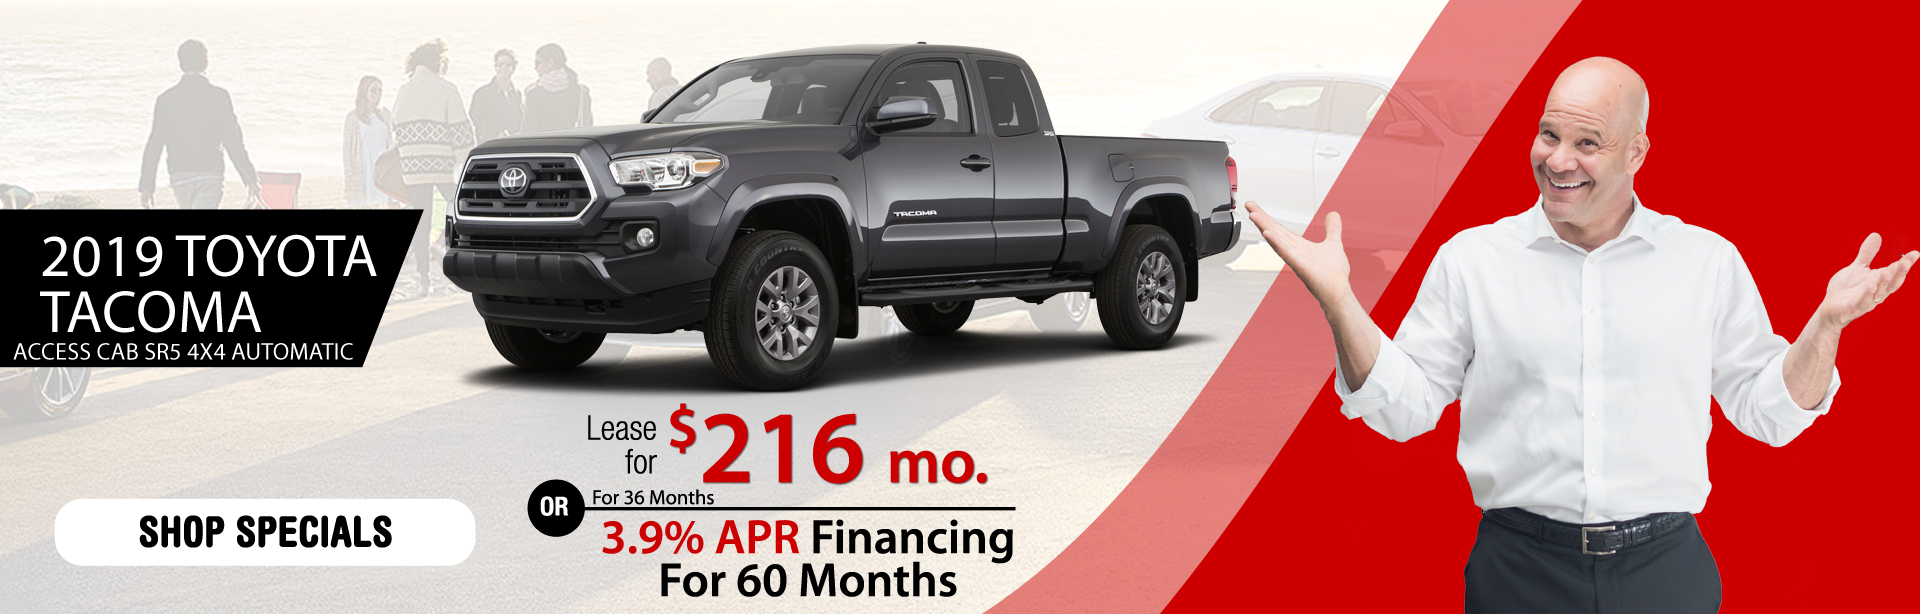 Toyota Tacoma Special in North Kingstown, Rhode Island